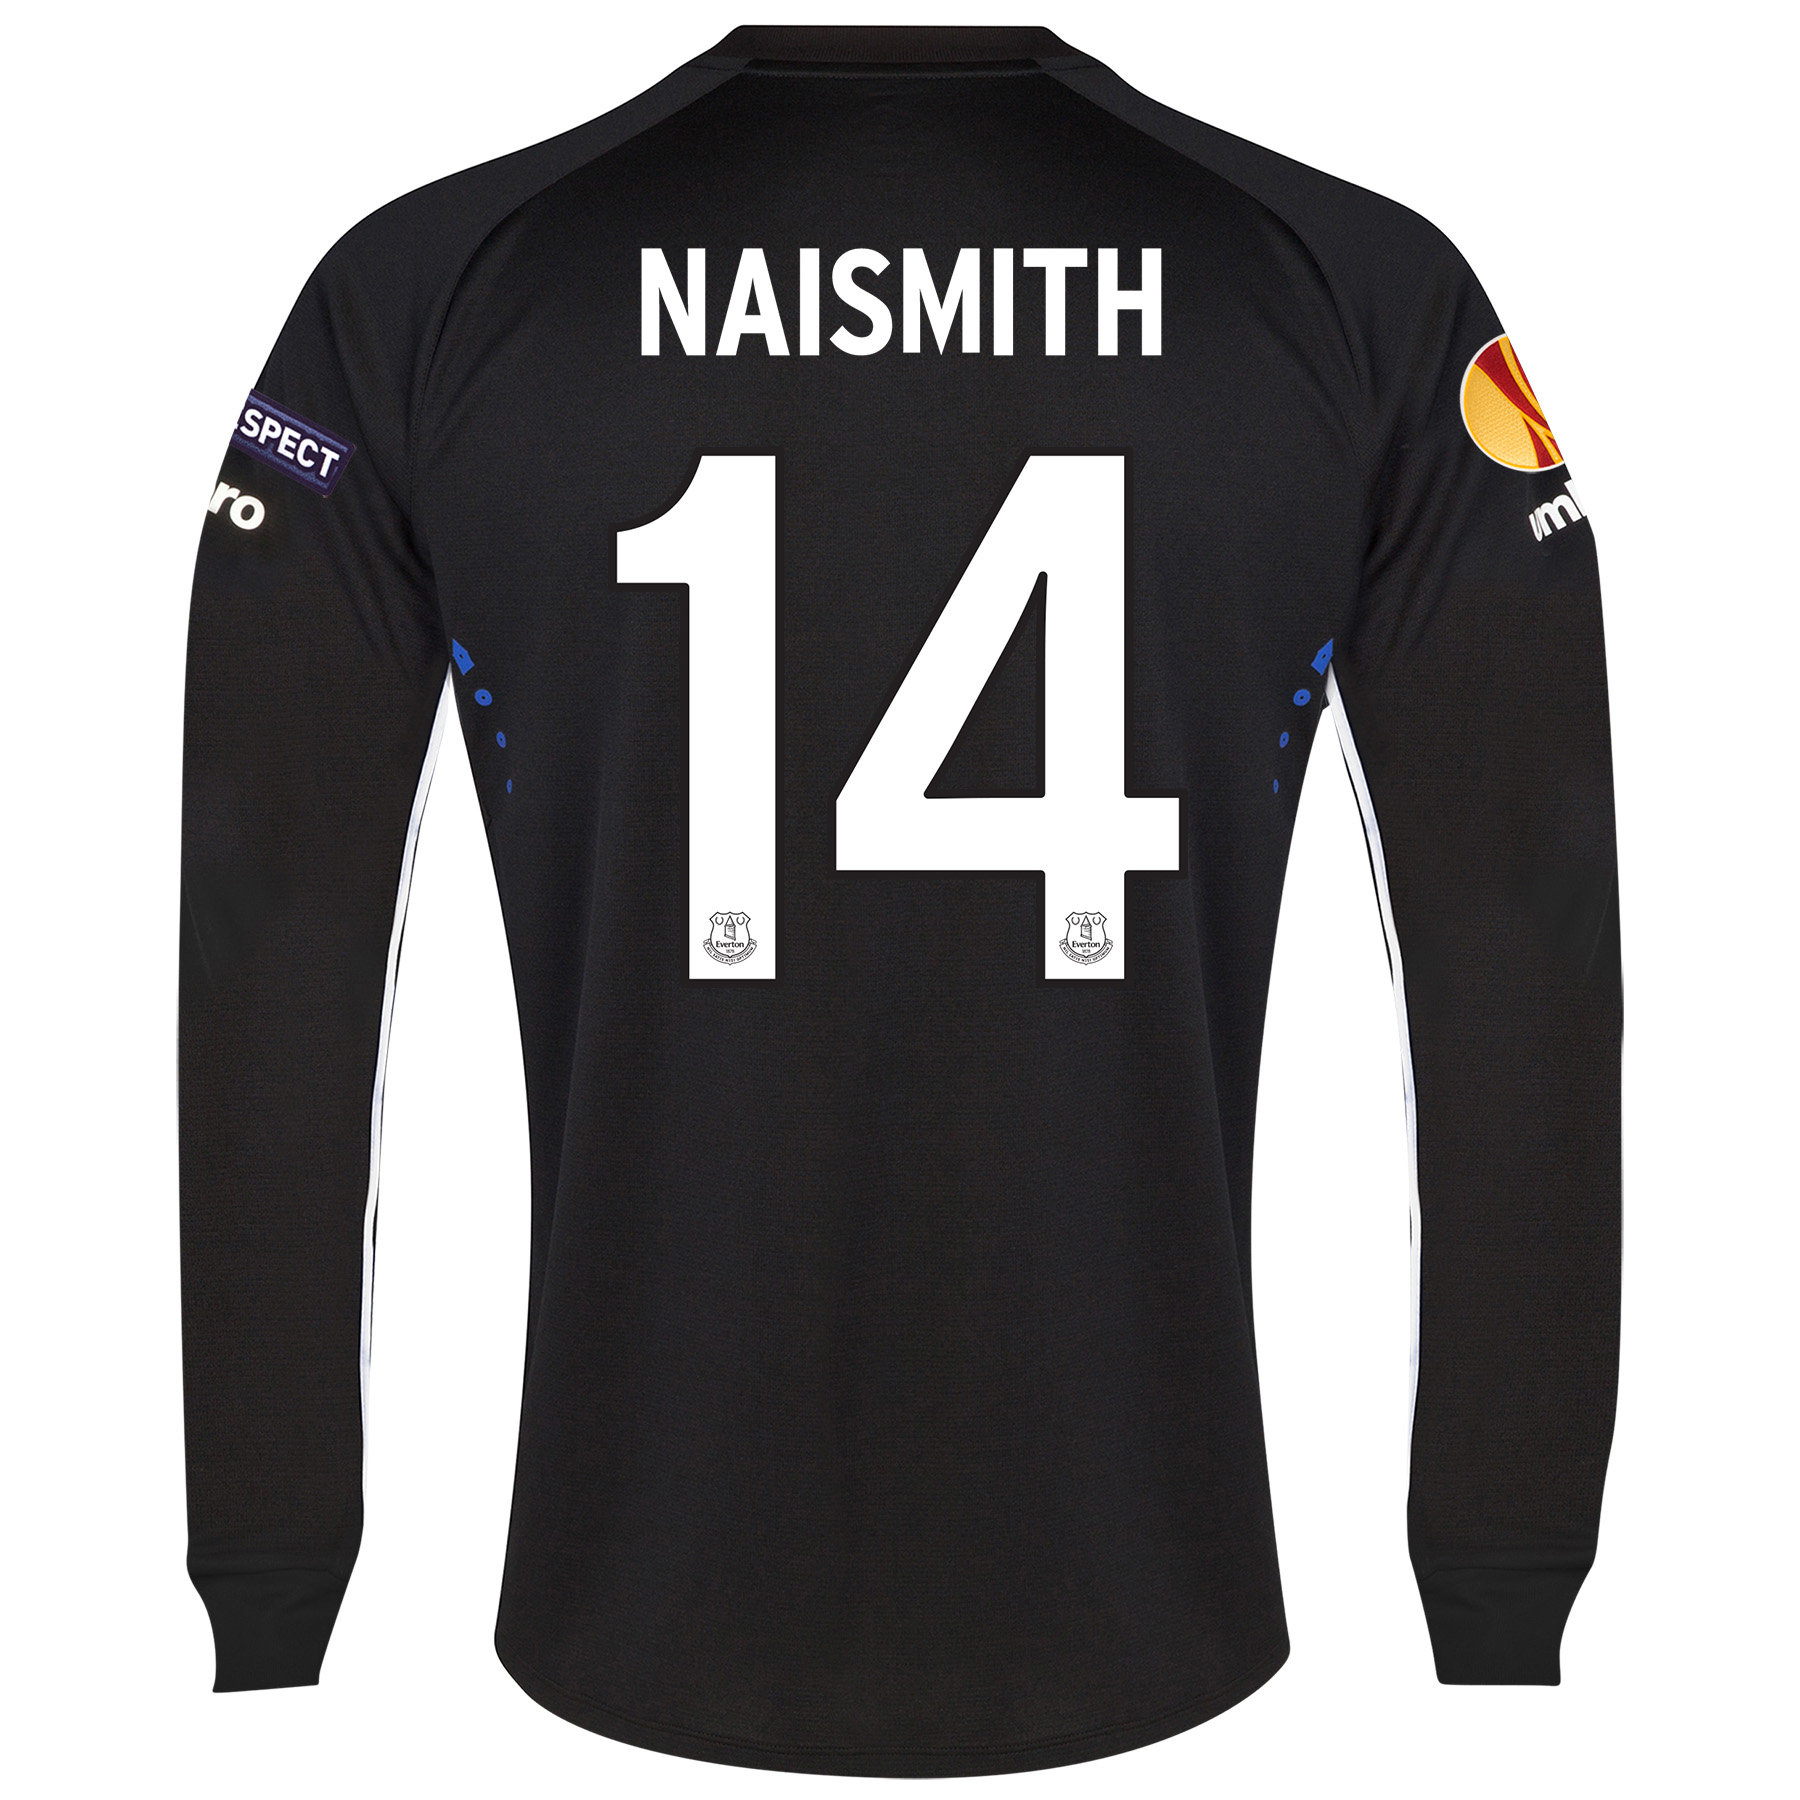 Everton UEFA Europa League Away Shirt 2014/15 LS with Naismith 14 printing